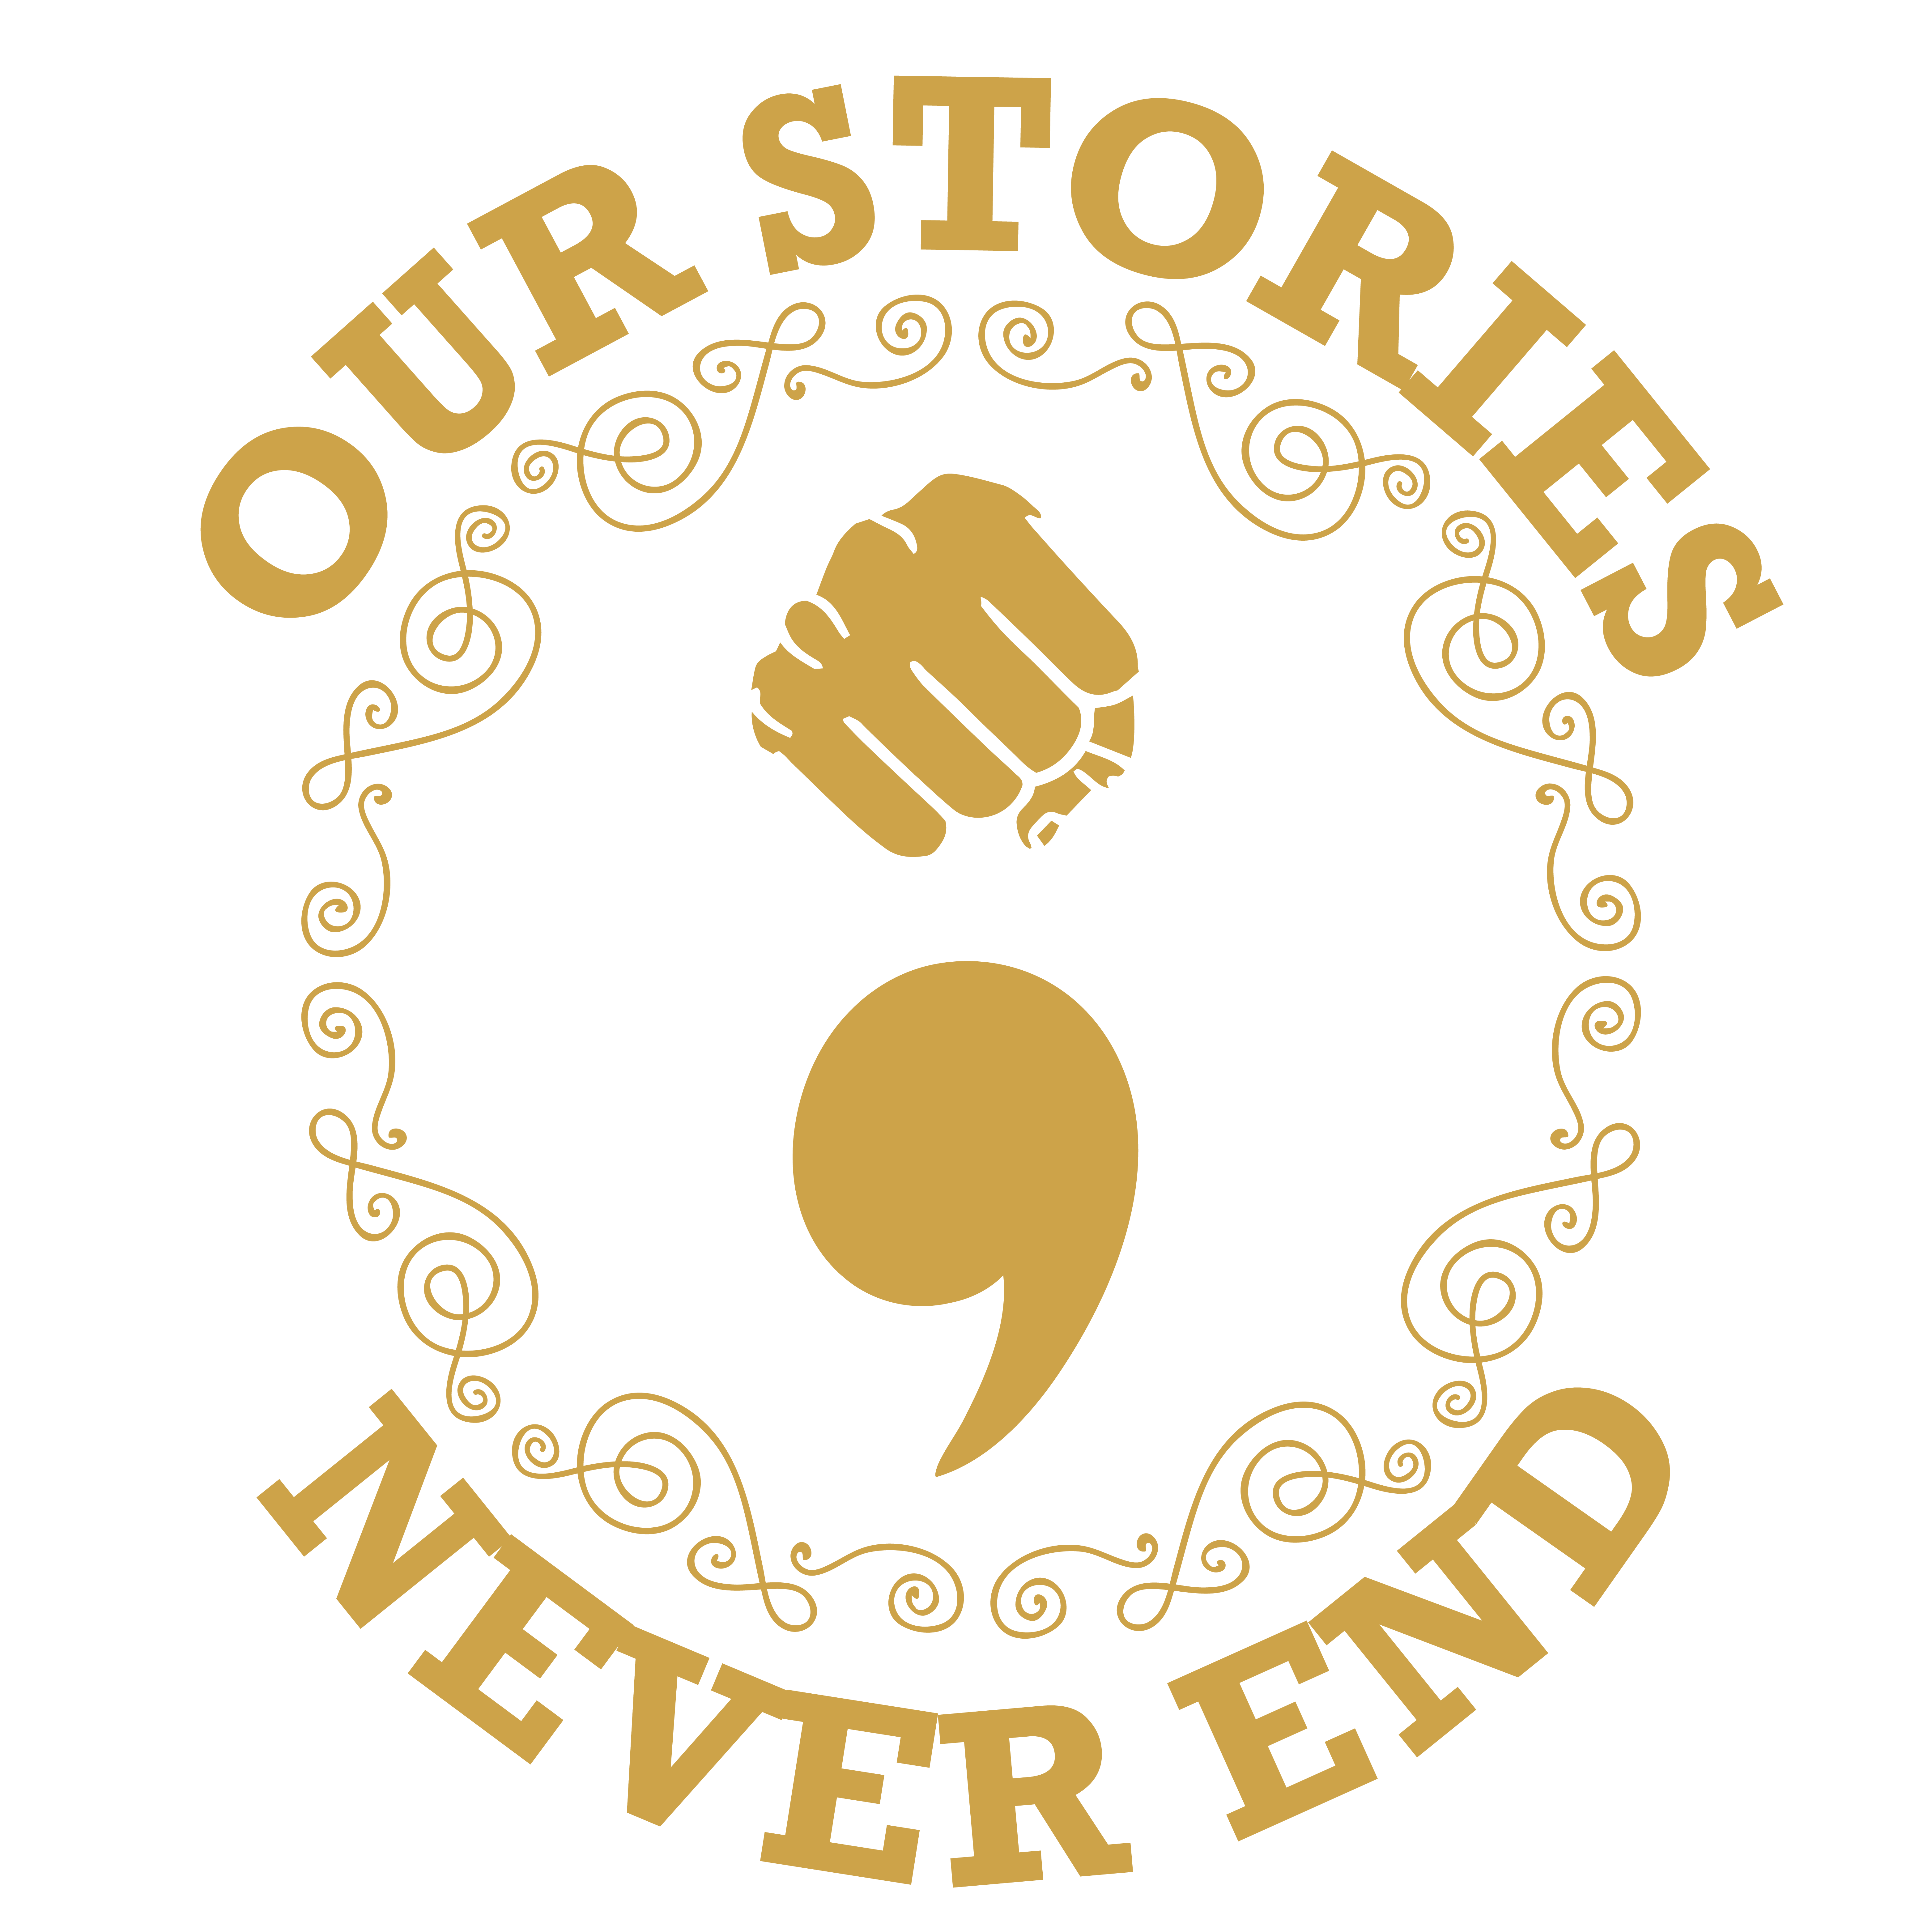 Our Stories Never End round logo